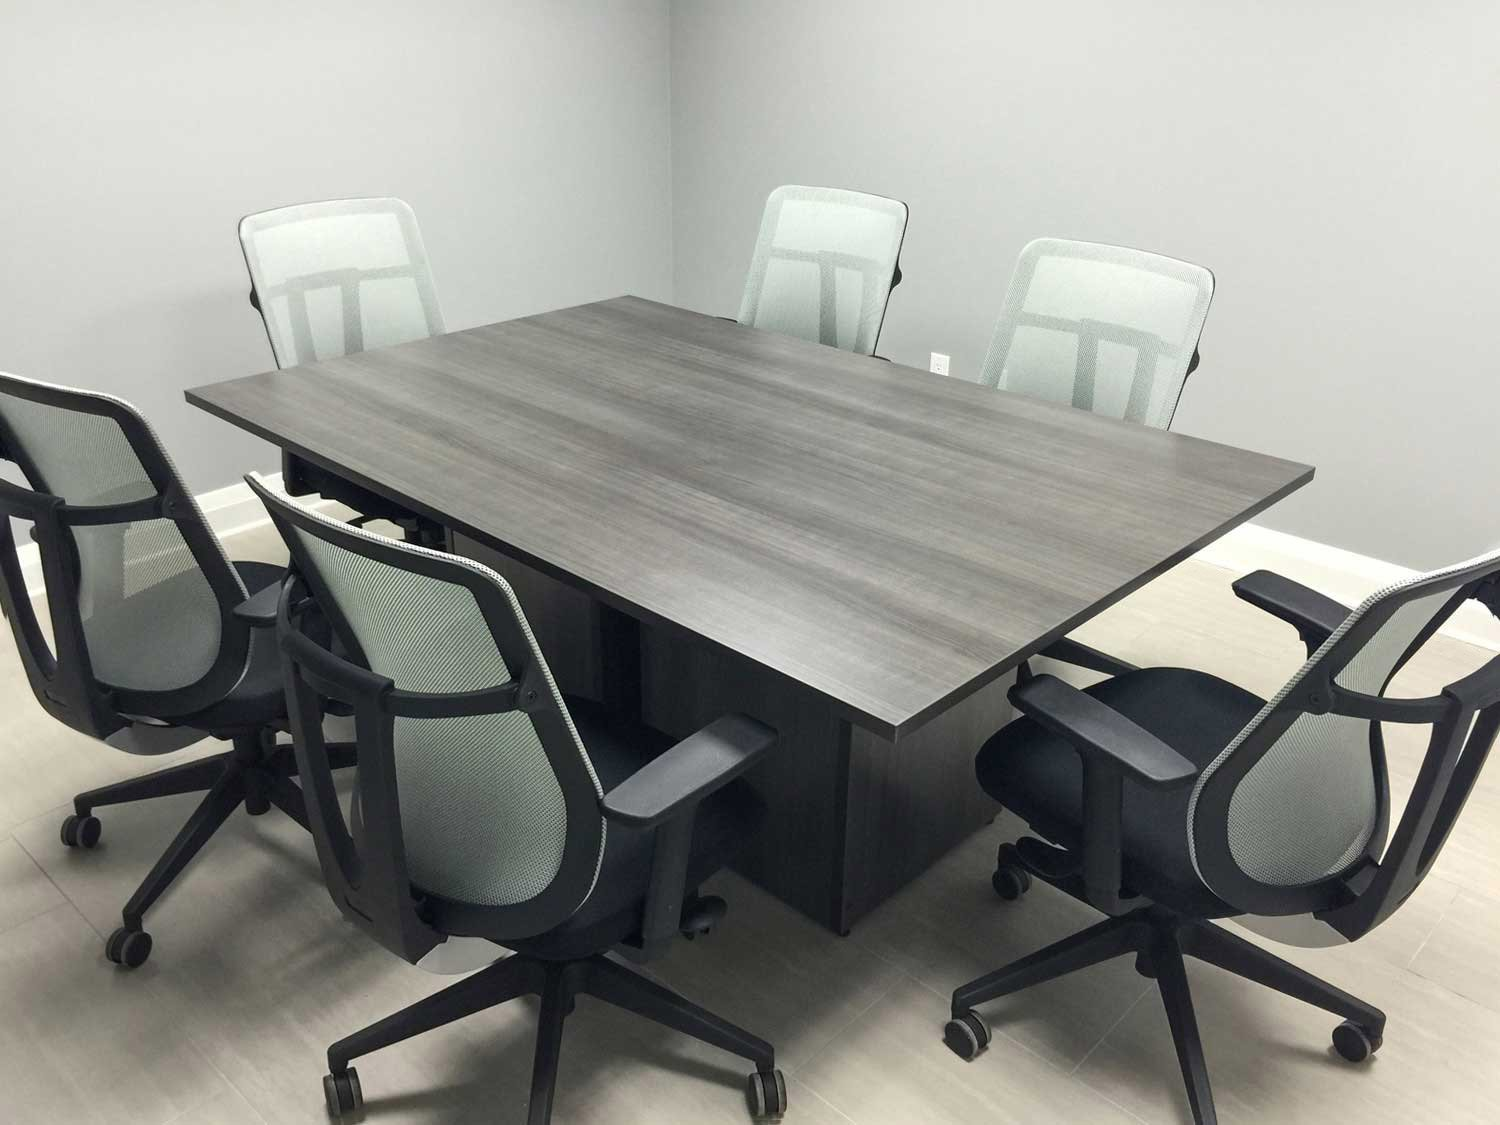 Square Meeting Table with Cube Base, chairs